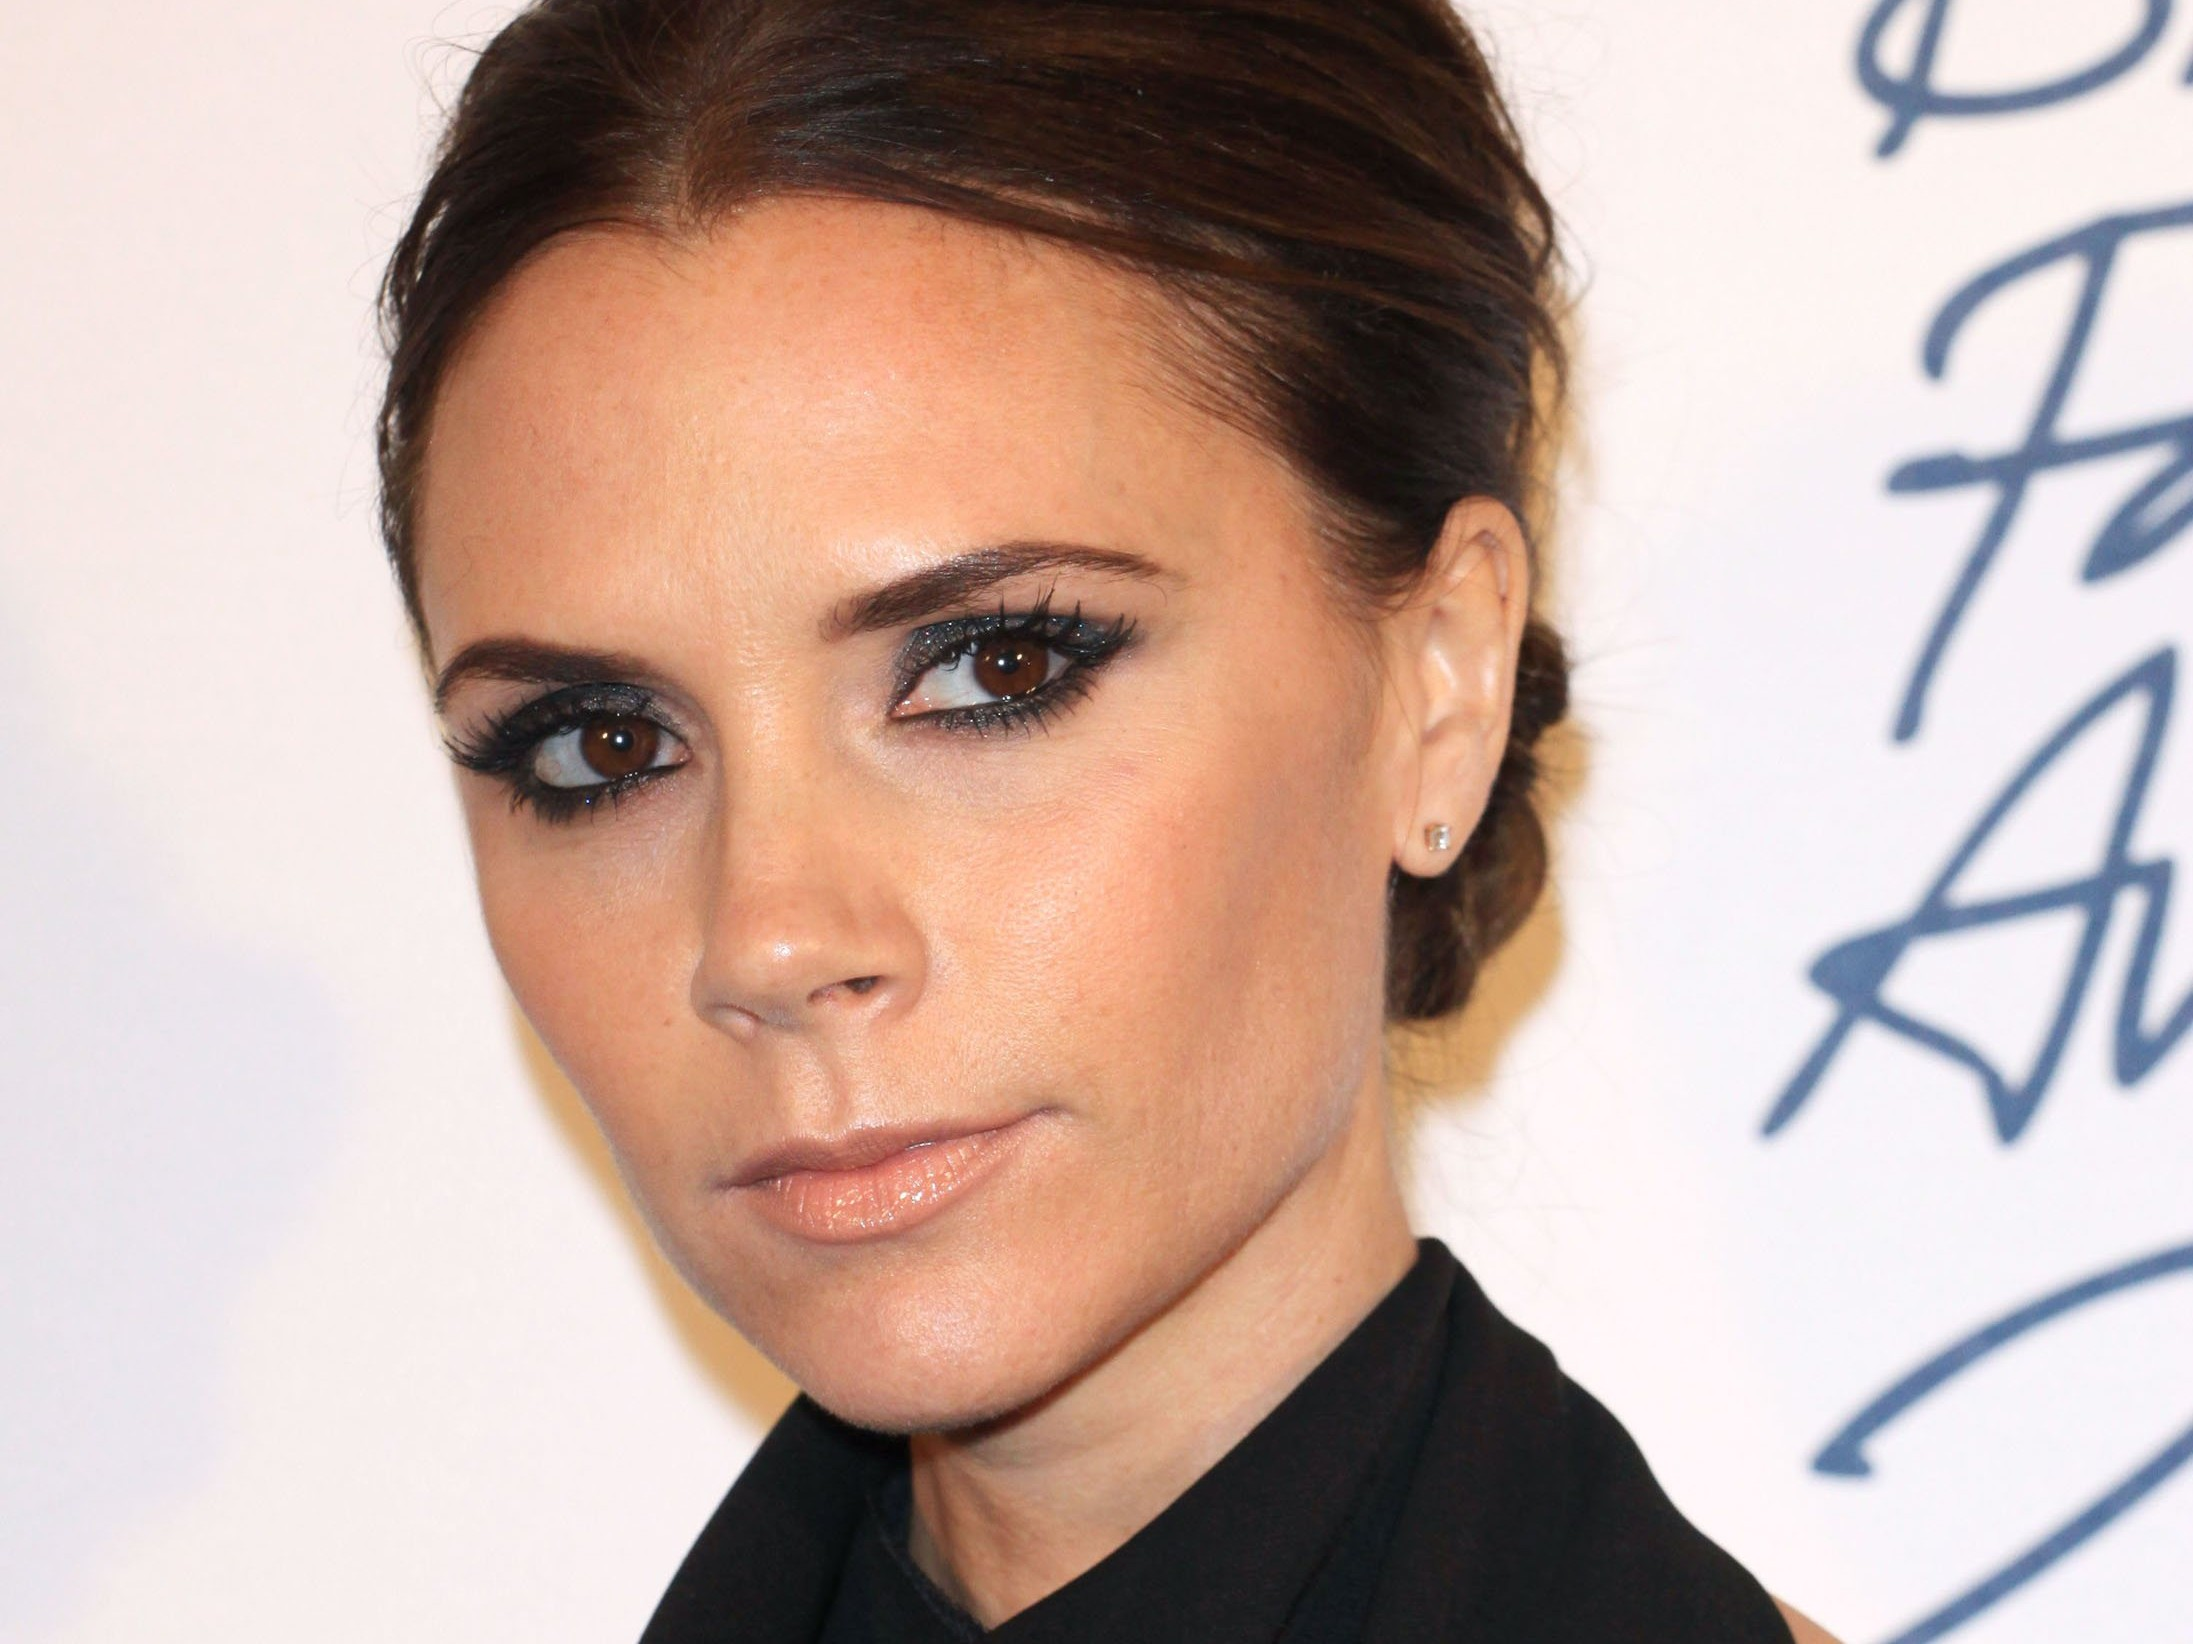 victoria-beckham-blog-photo1.jpg